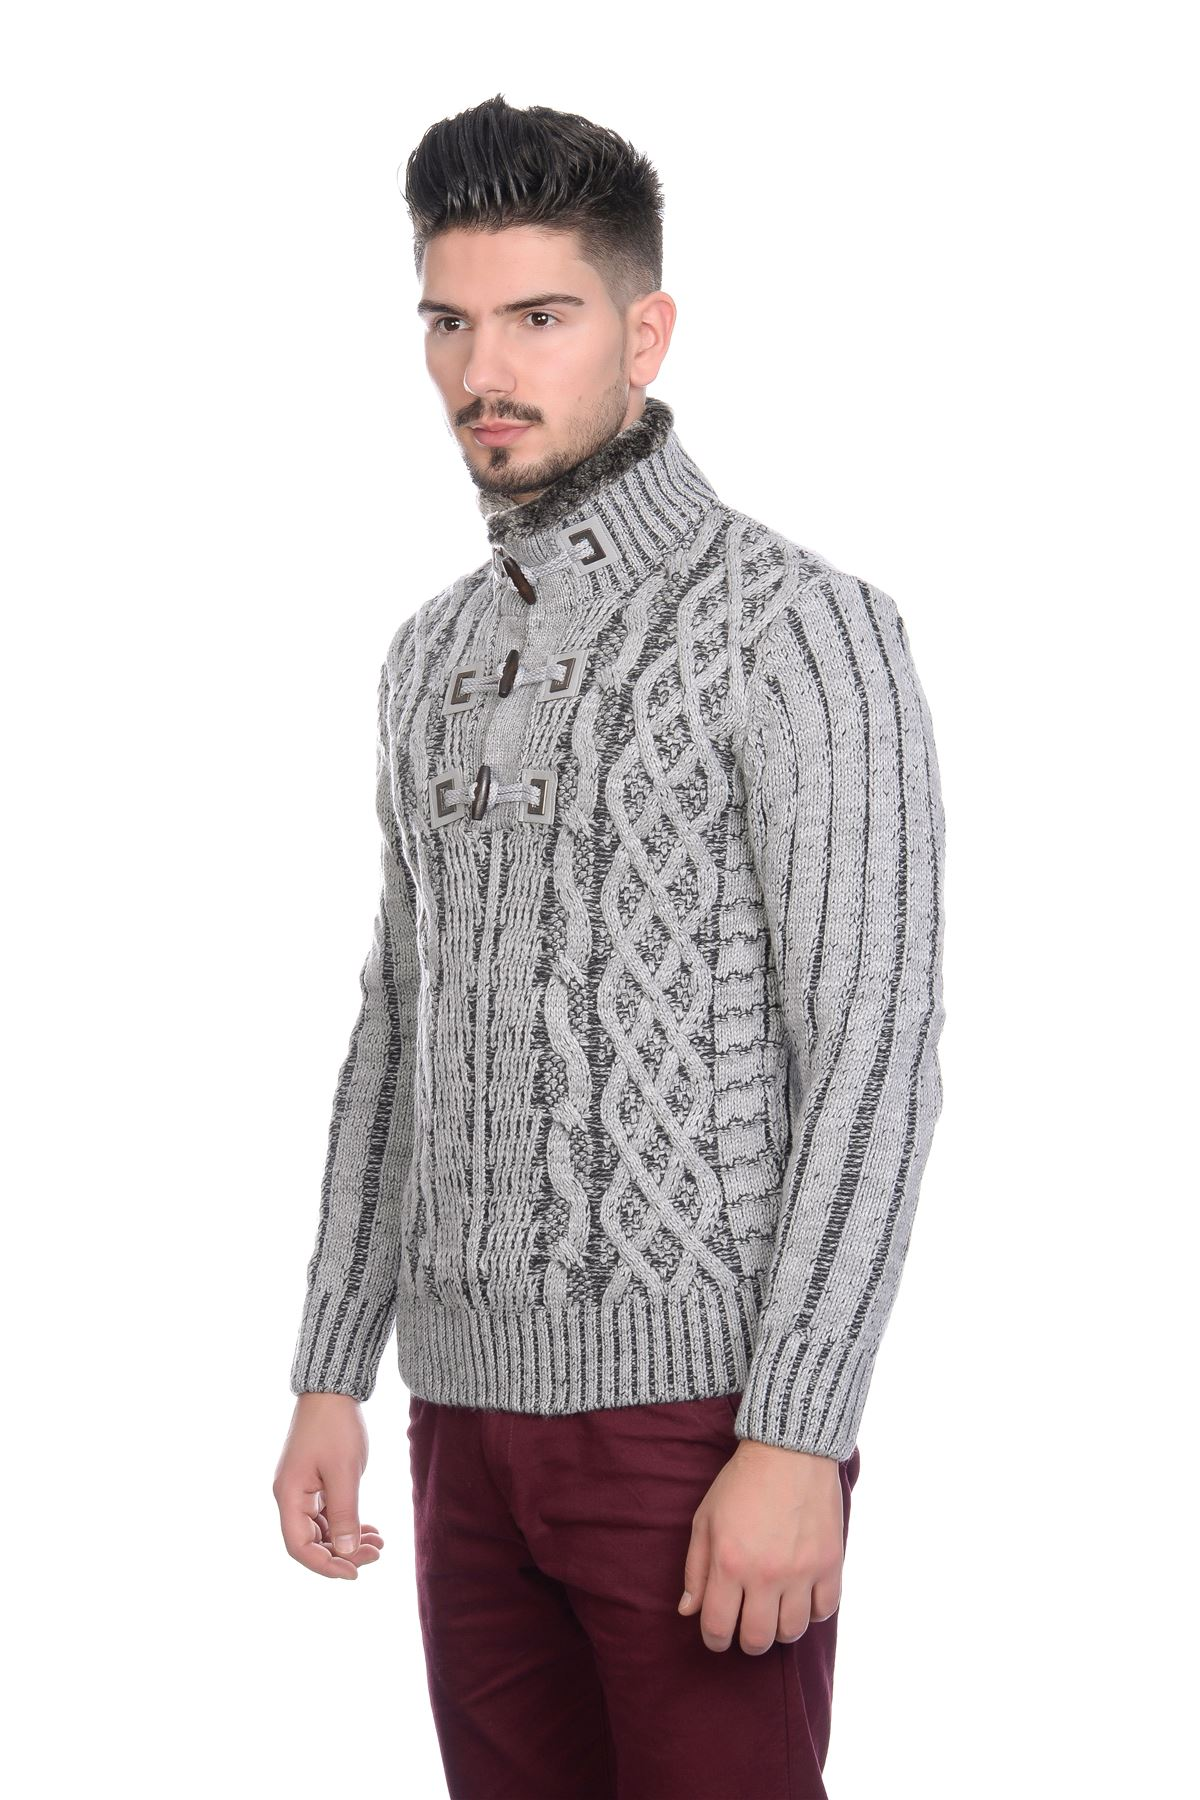 Men's Clothing, Sweaters and Shoes on Sale at Macy's come in a variety of styles. Shop Macy's Sale & Clearance for men's clothing, Sweaters & shoes today!